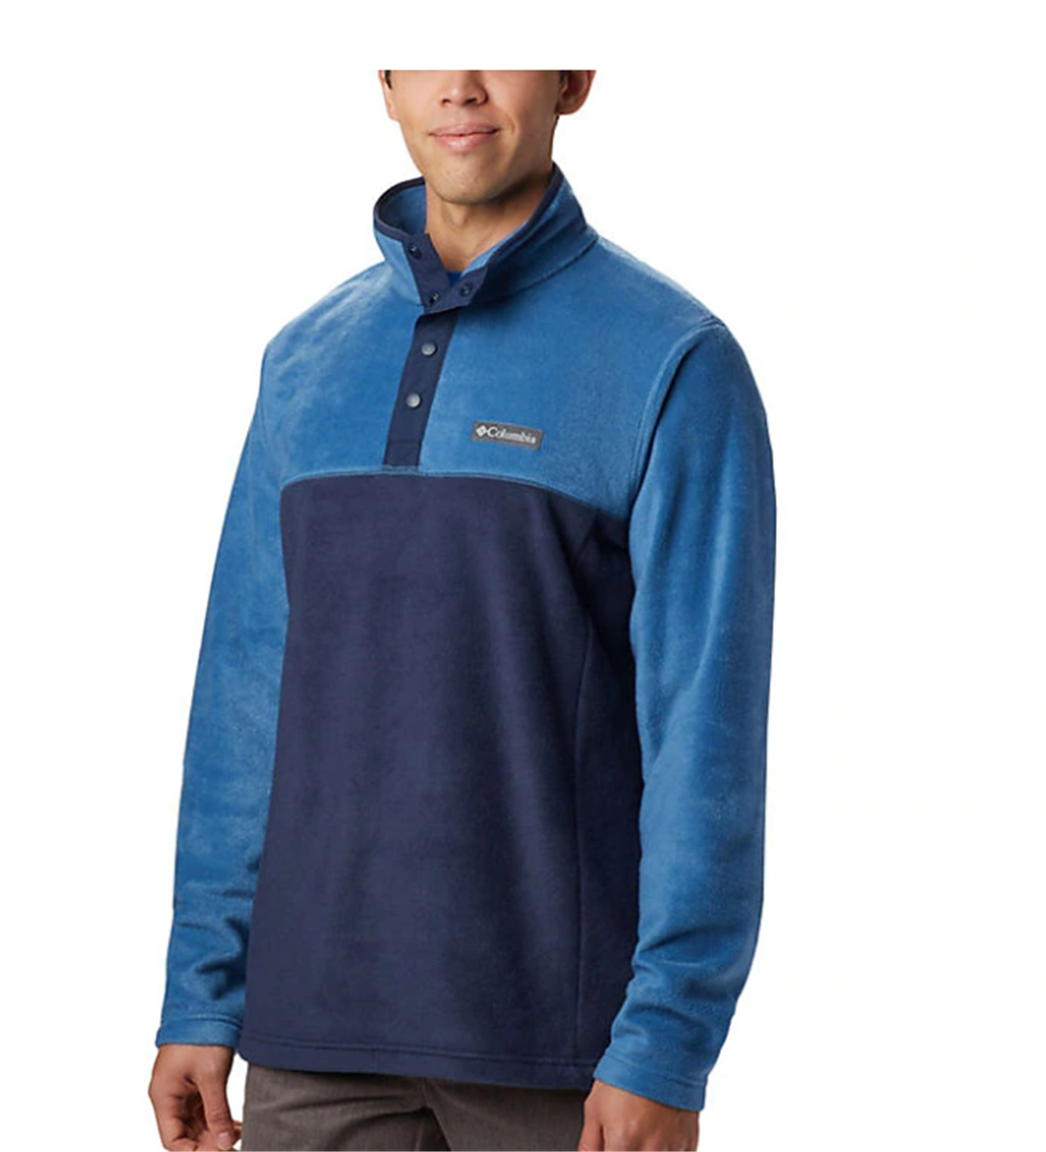 Columbia – Men's Steens Mountain Half Snap Fleece Pullover Only $17.50, Reg $34.99 + Free Shipping!